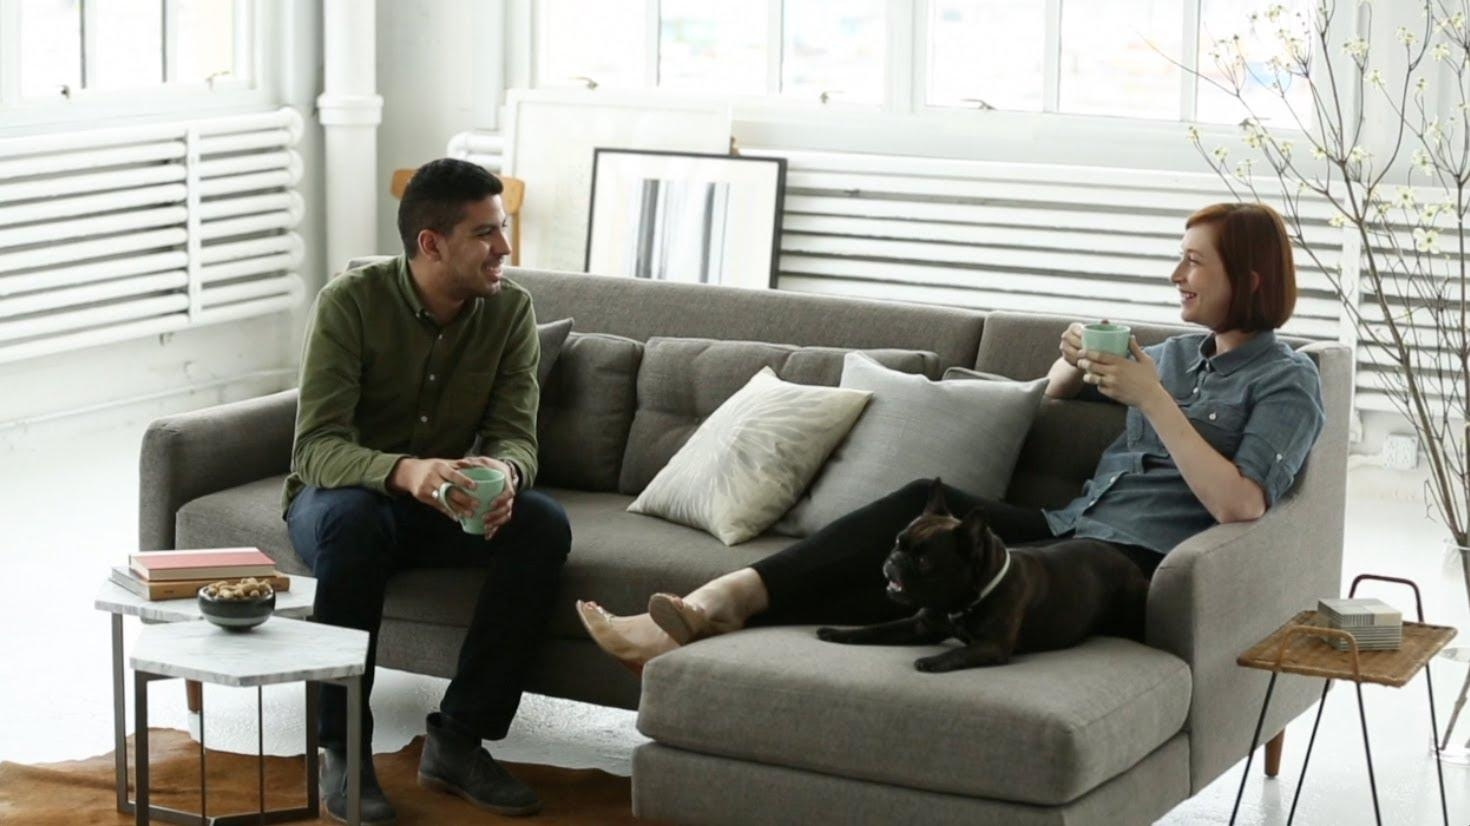 Mid Century Sofa Design With Modern Comfort | West Elm – Youtube Intended For West Elm Sectionals (Image 15 of 20)